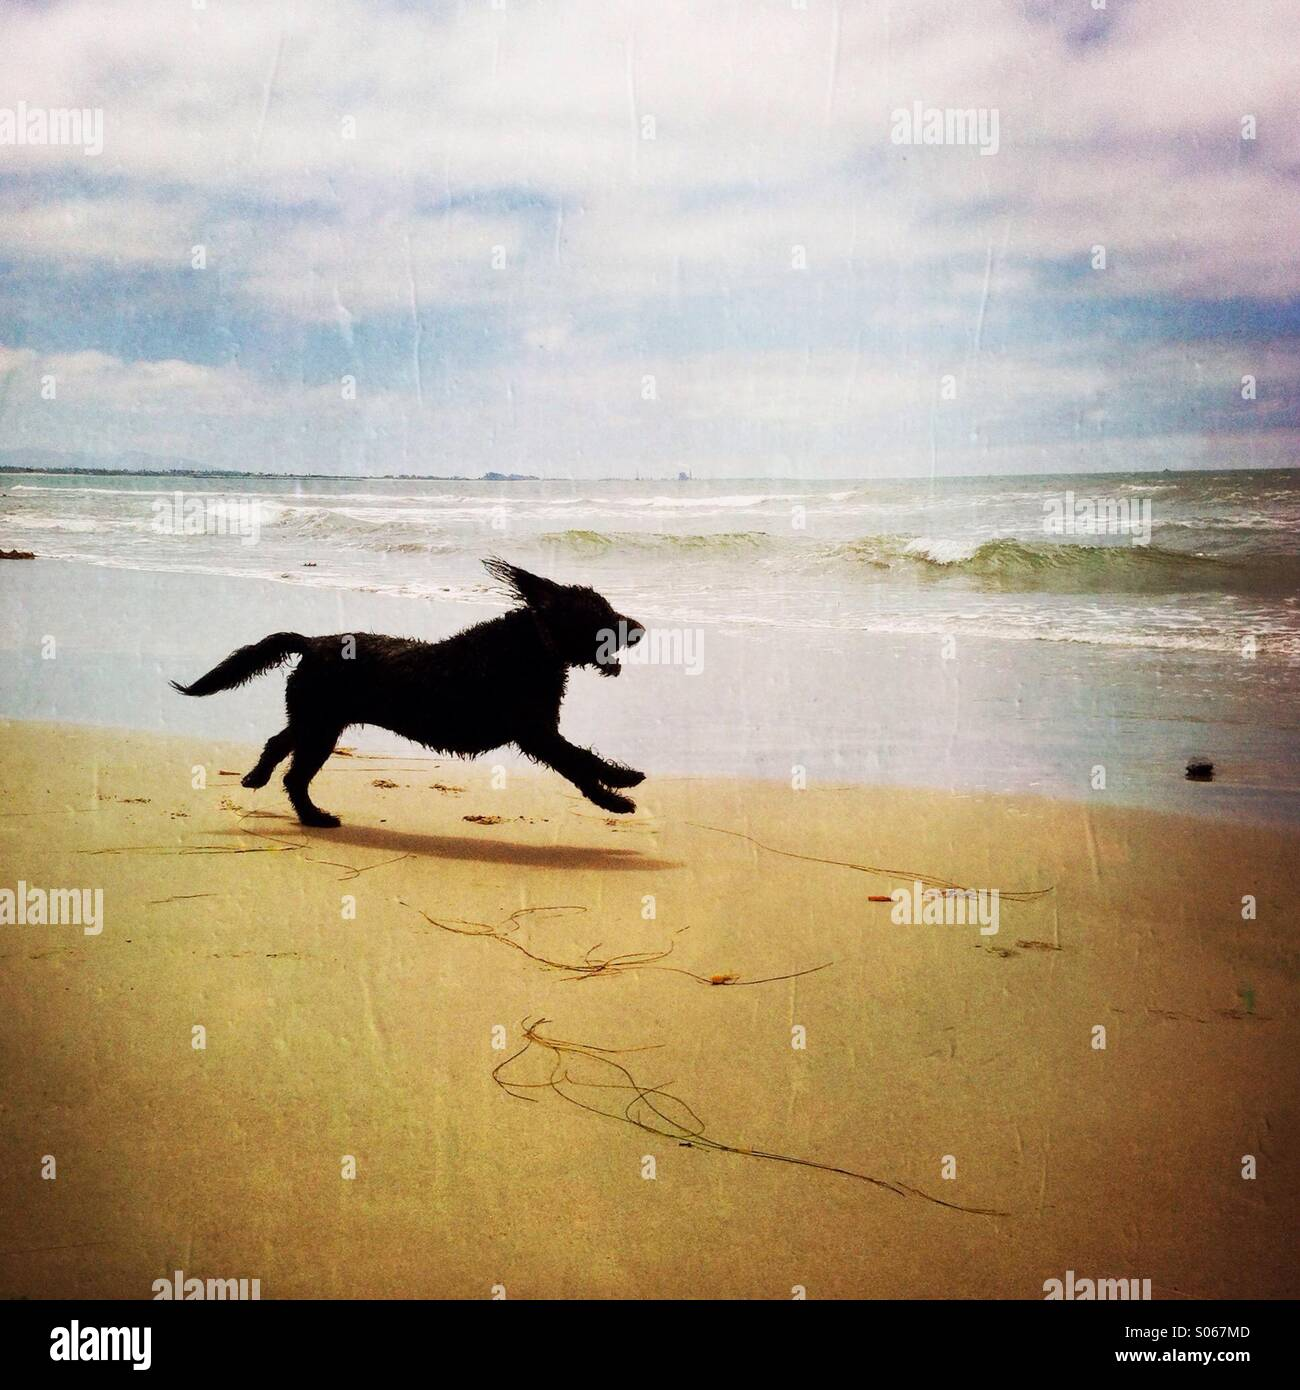 A happy labradoodle dog playing on the beach. Ventura California USA. - Stock Image